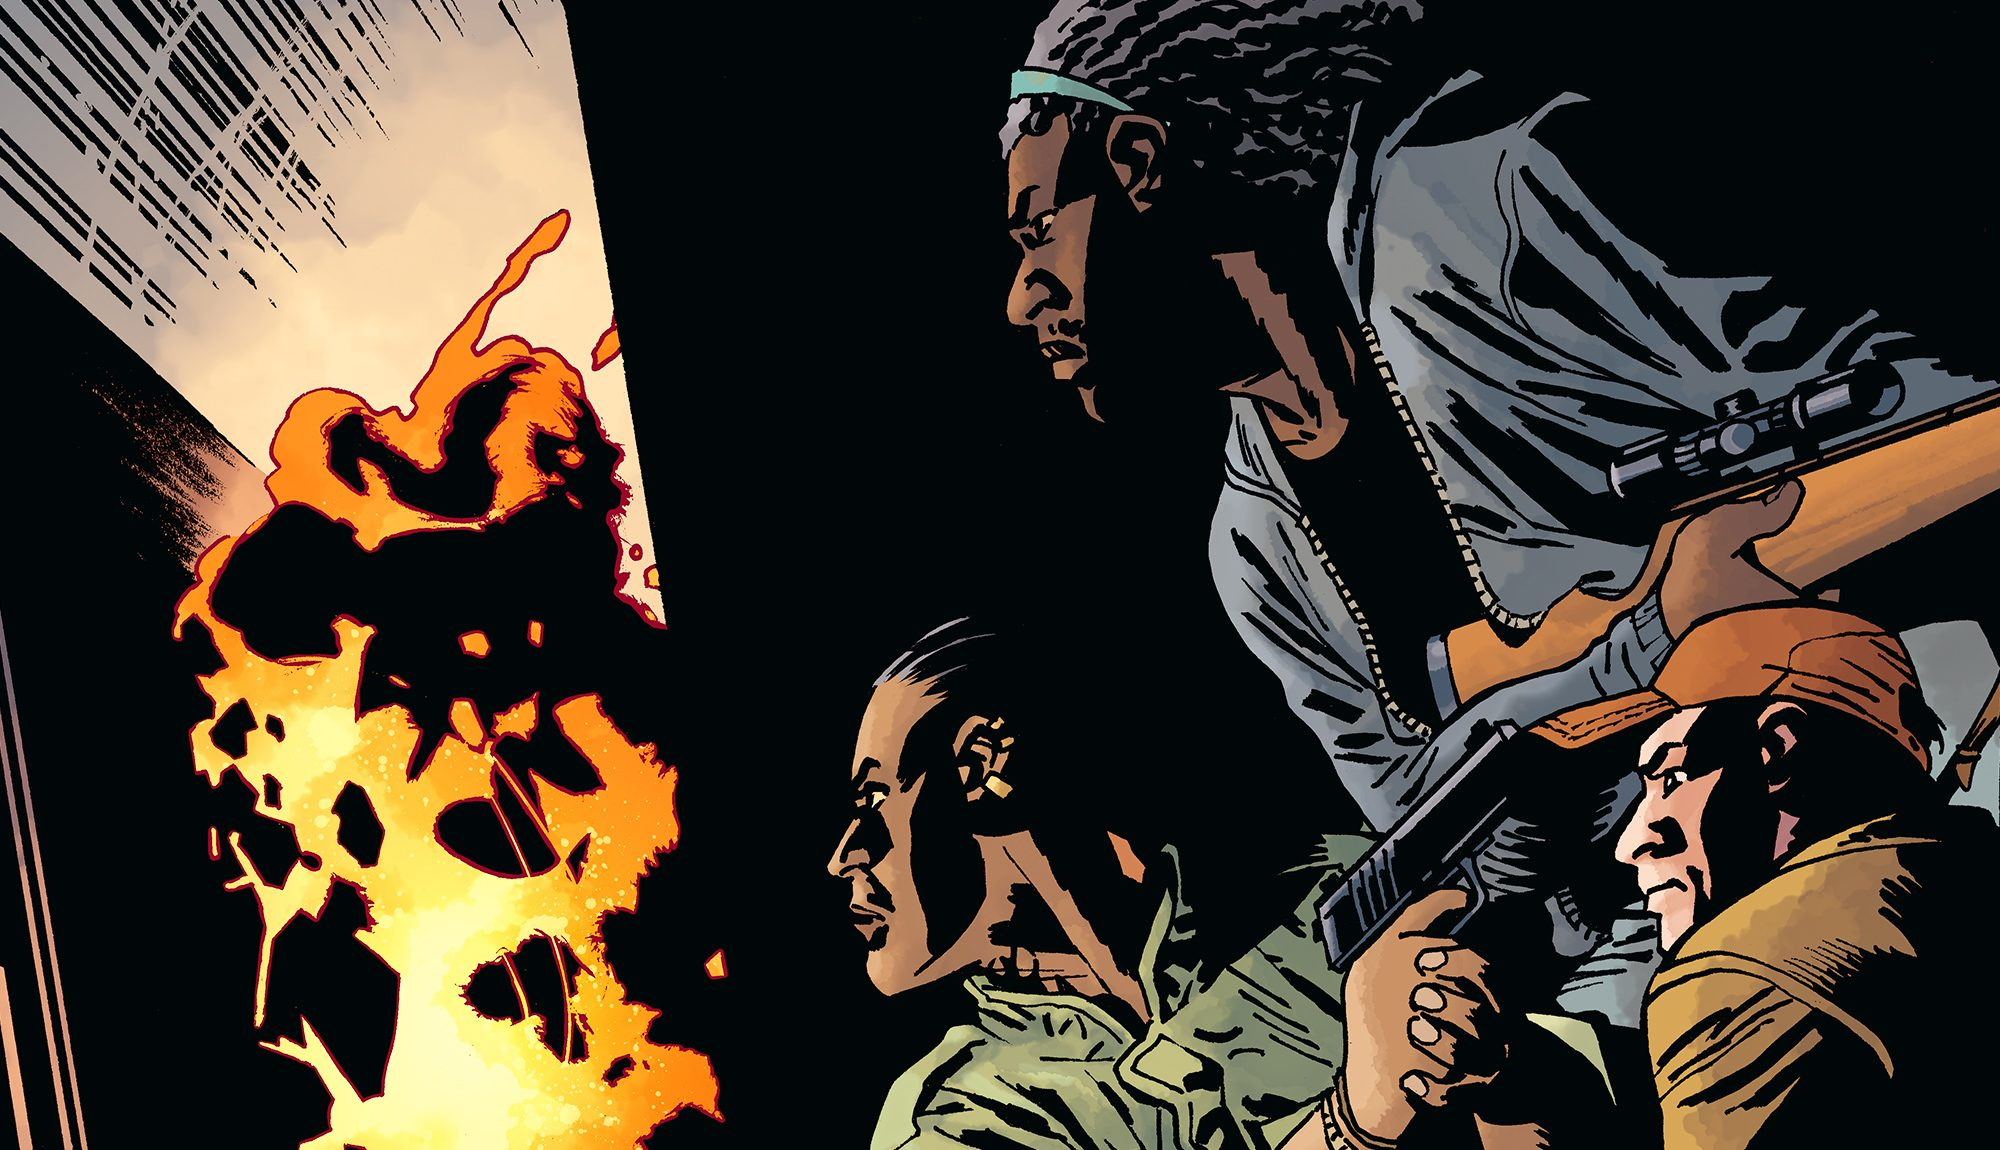 . The Walking Dead Issue 189  Lines Are Drawn  Reader Discussion